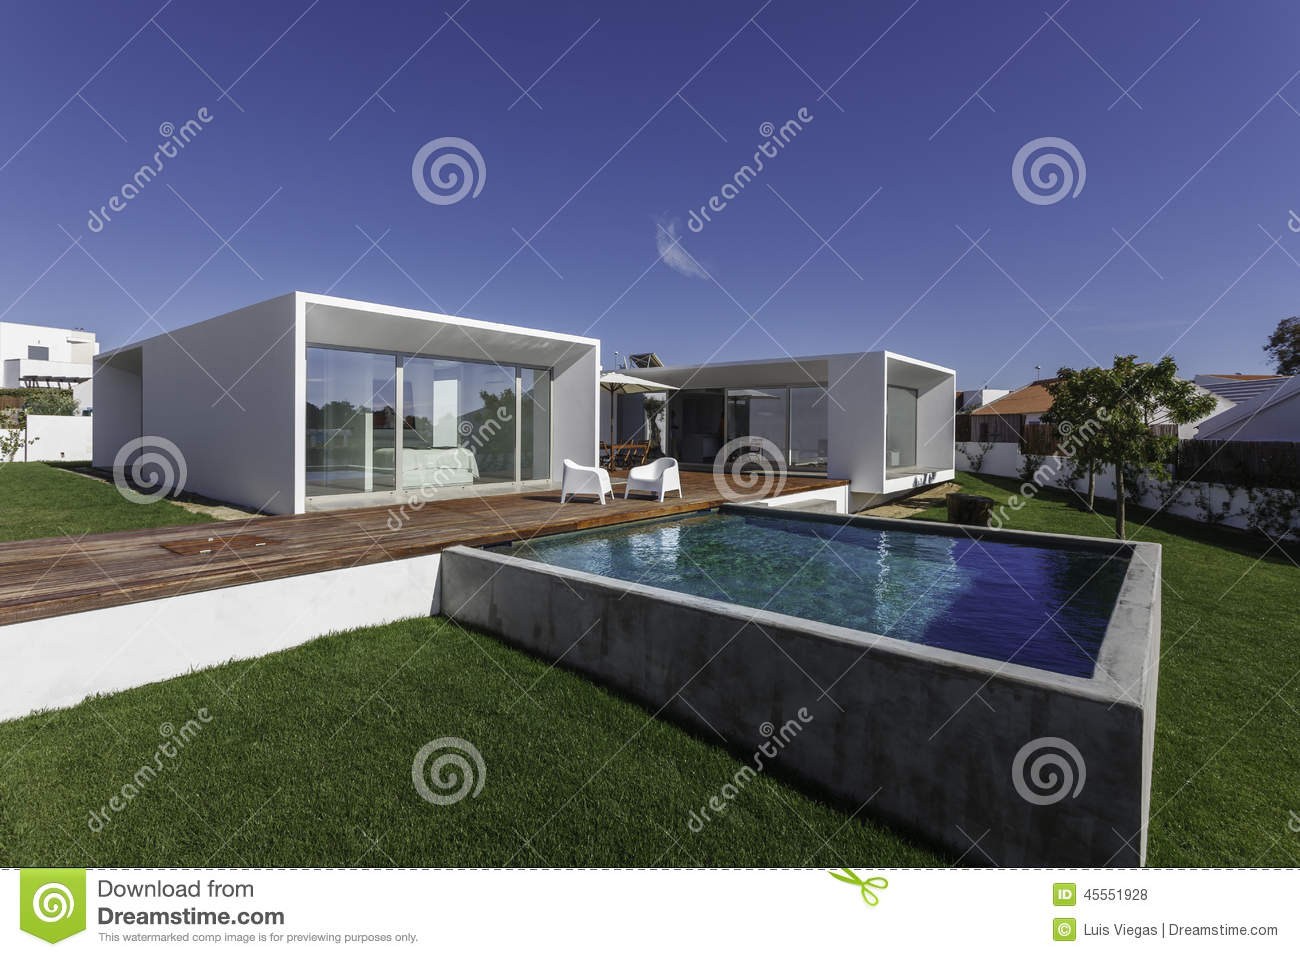 House With Garden Swimming Pool And Wooden Deck Stock